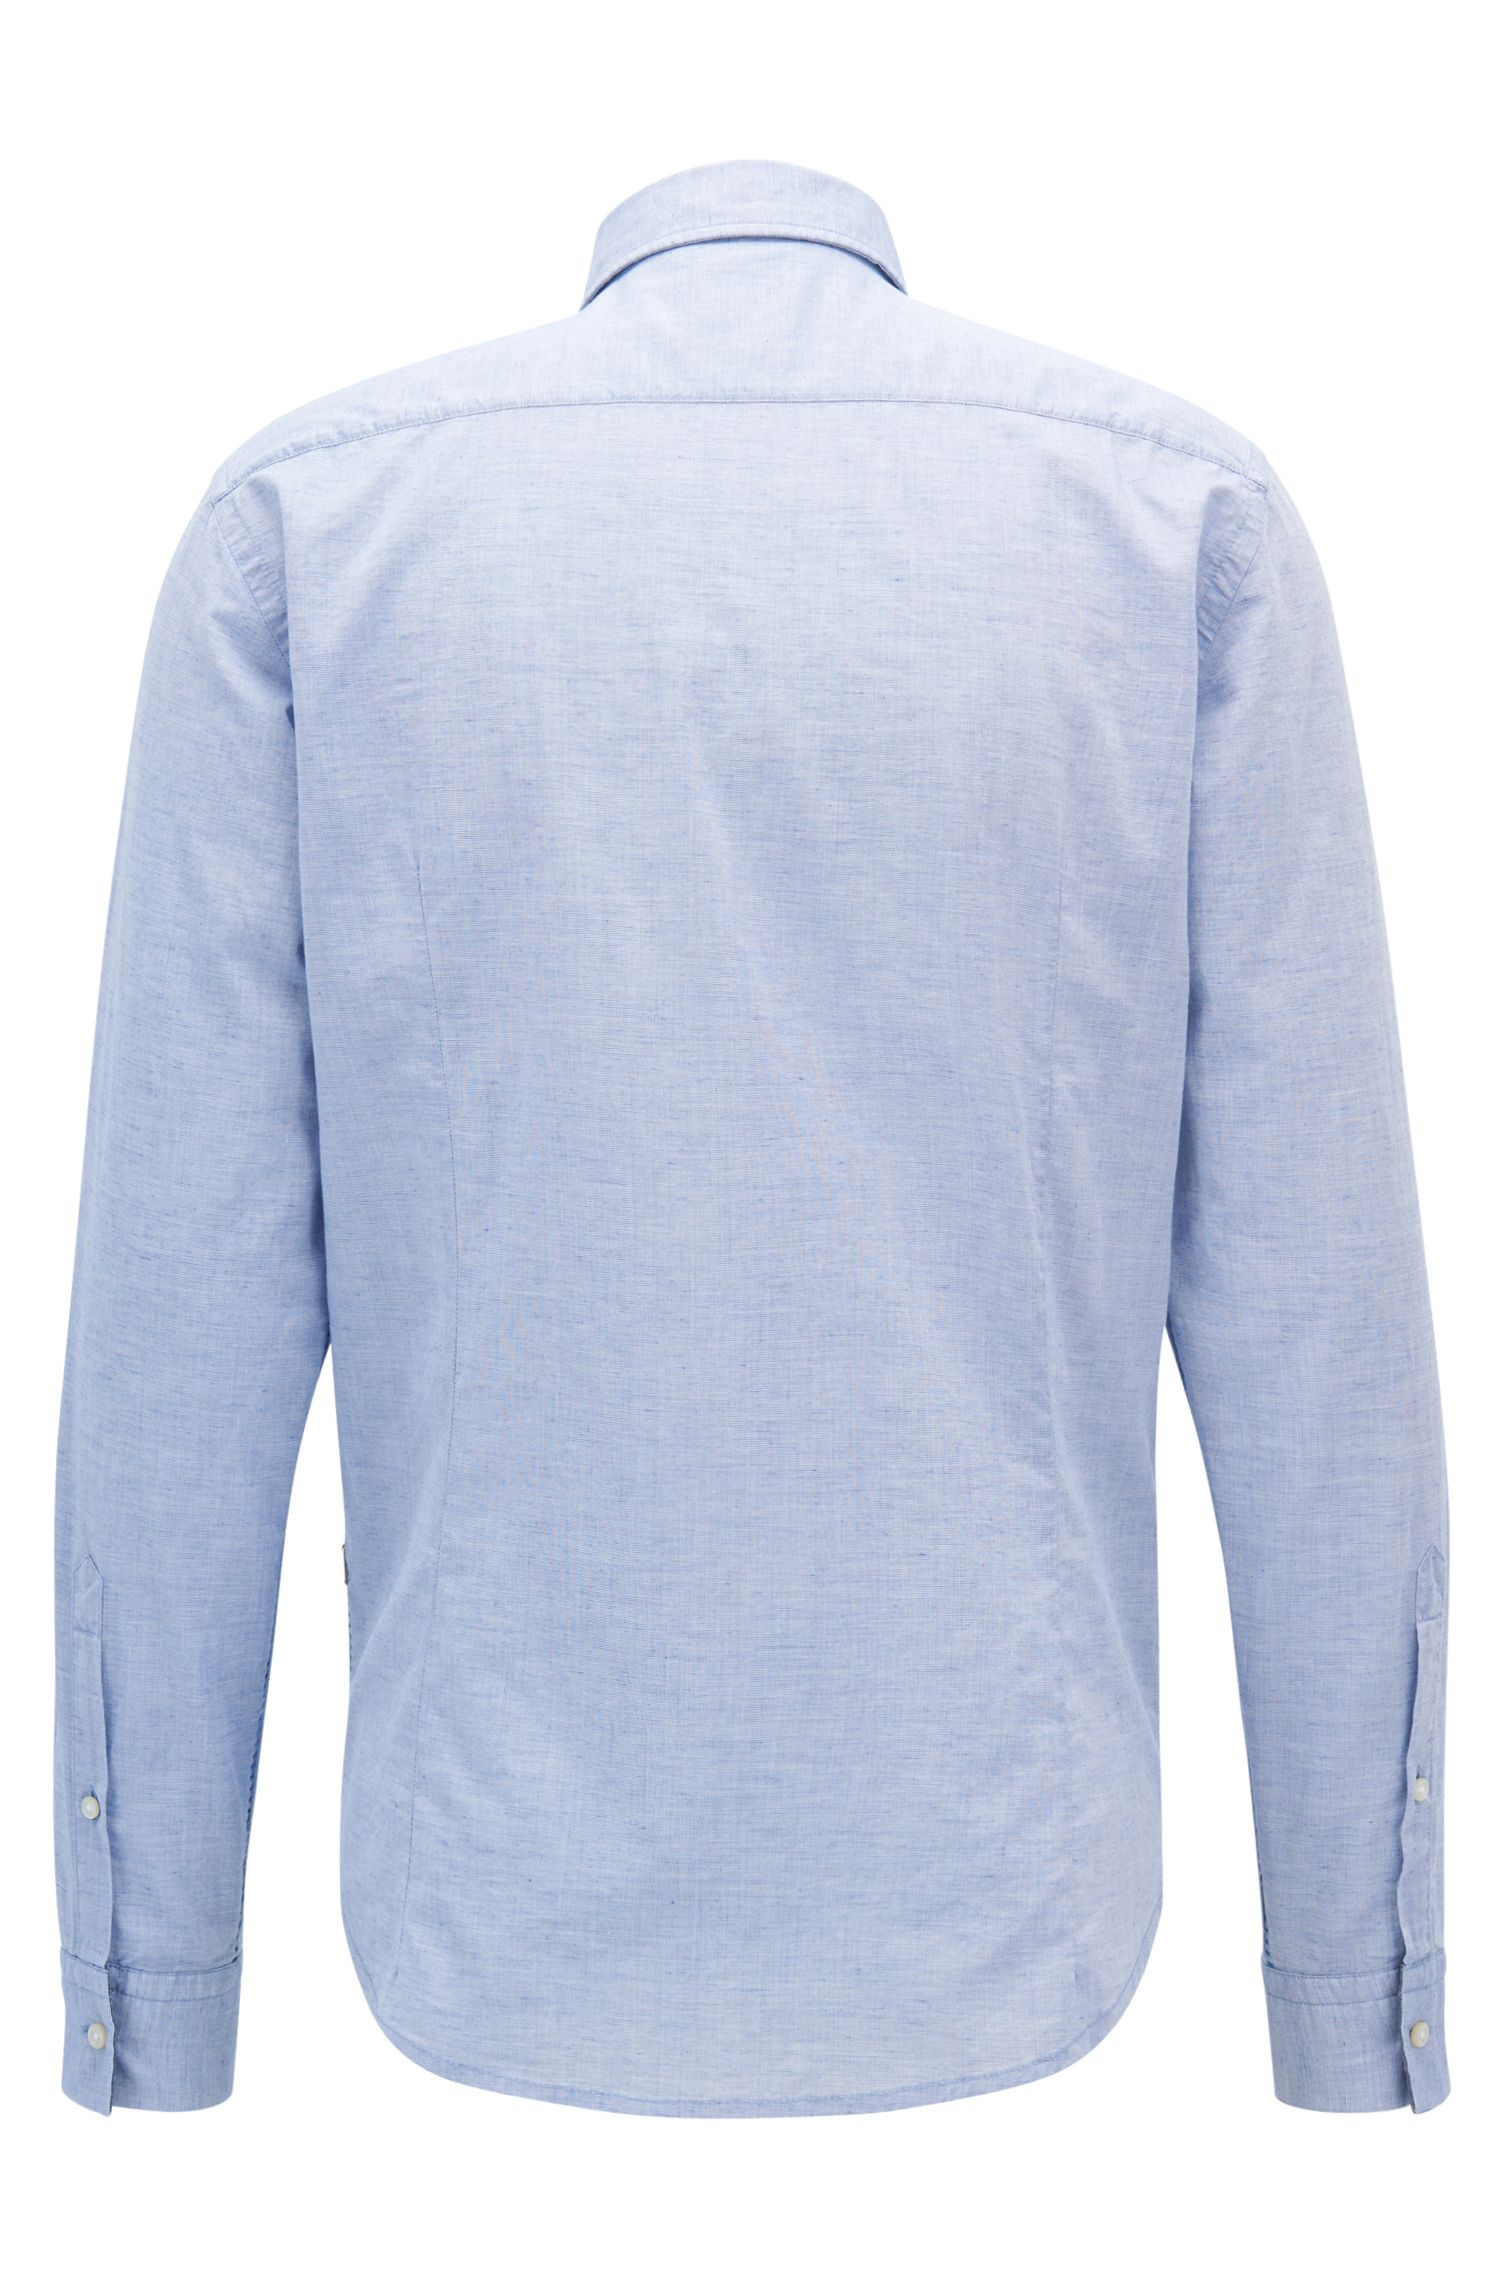 Slim-fit shirt in a structured cotton blend